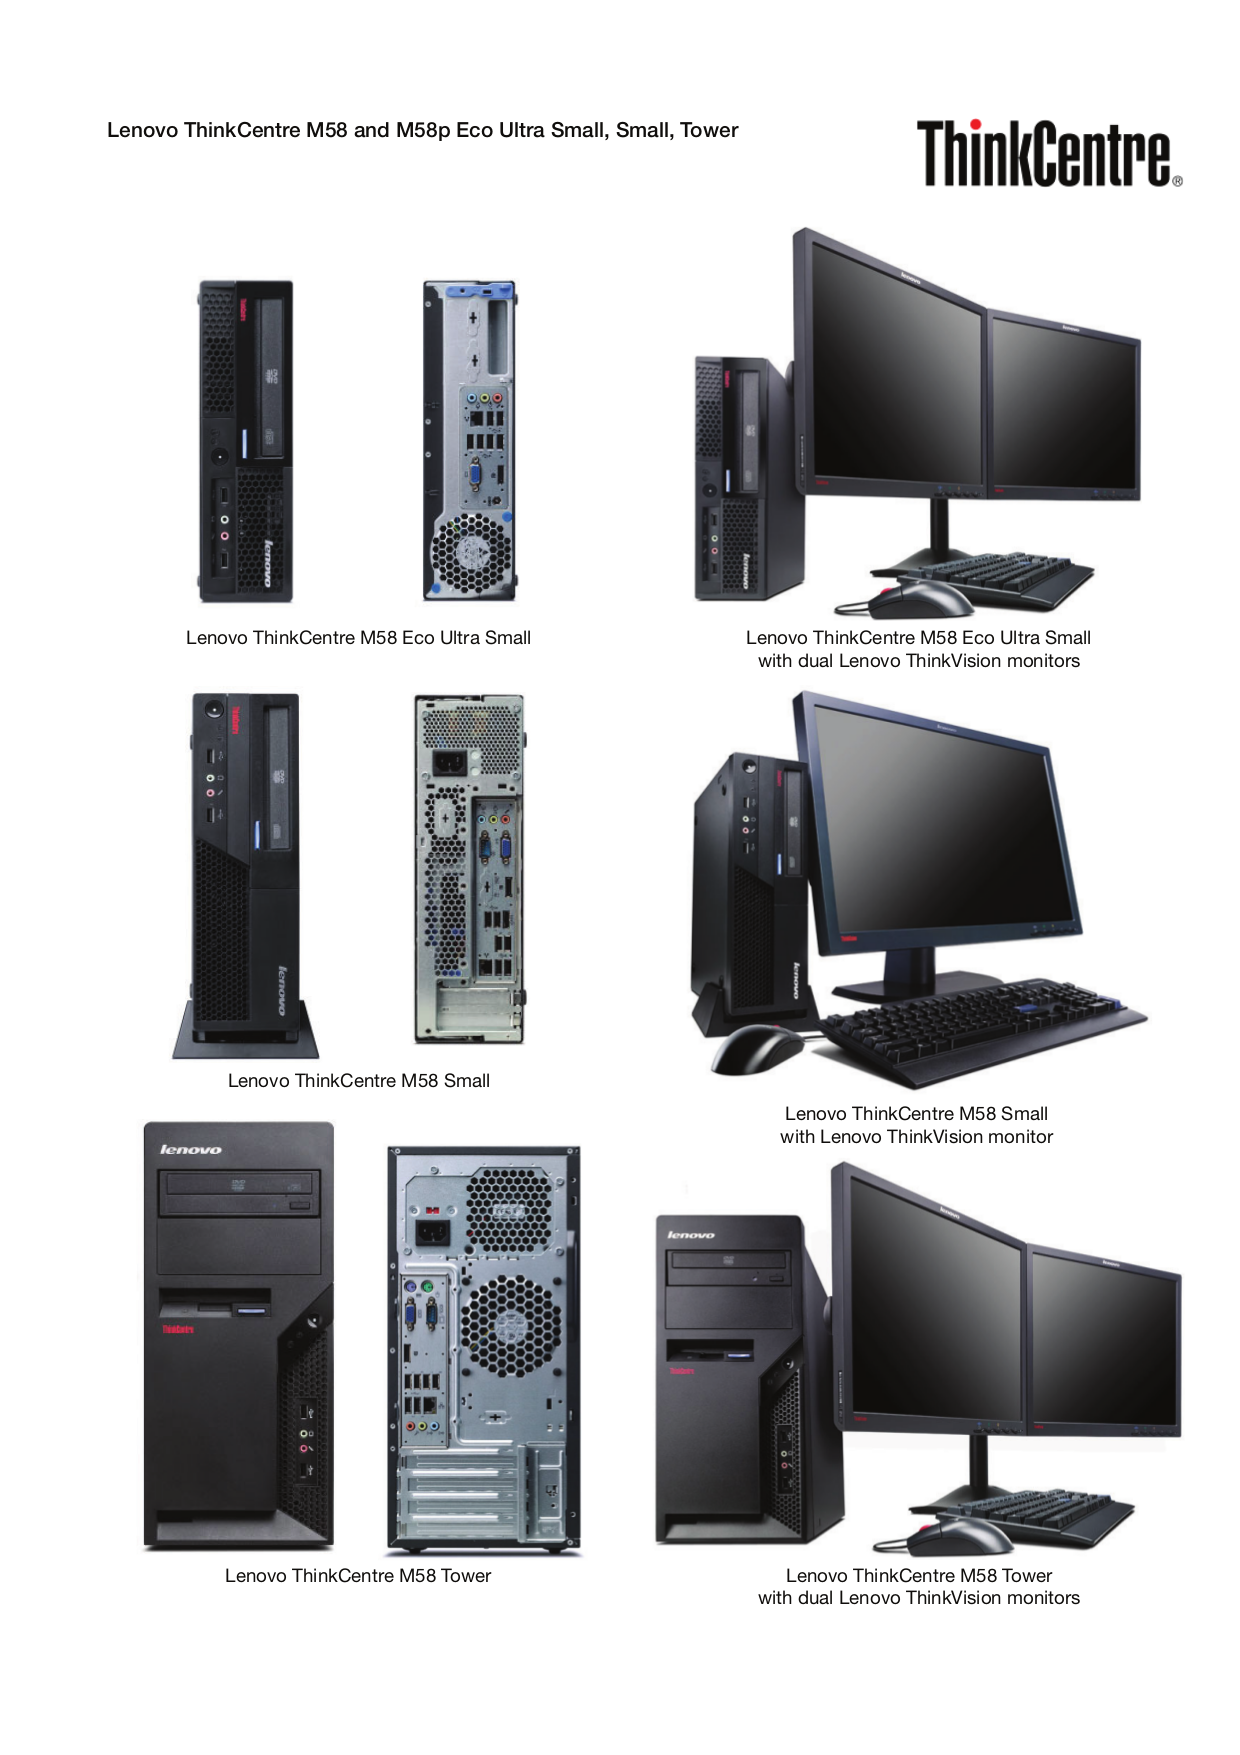 pdf for Lenovo Desktop ThinkCentre M58 6239 manual